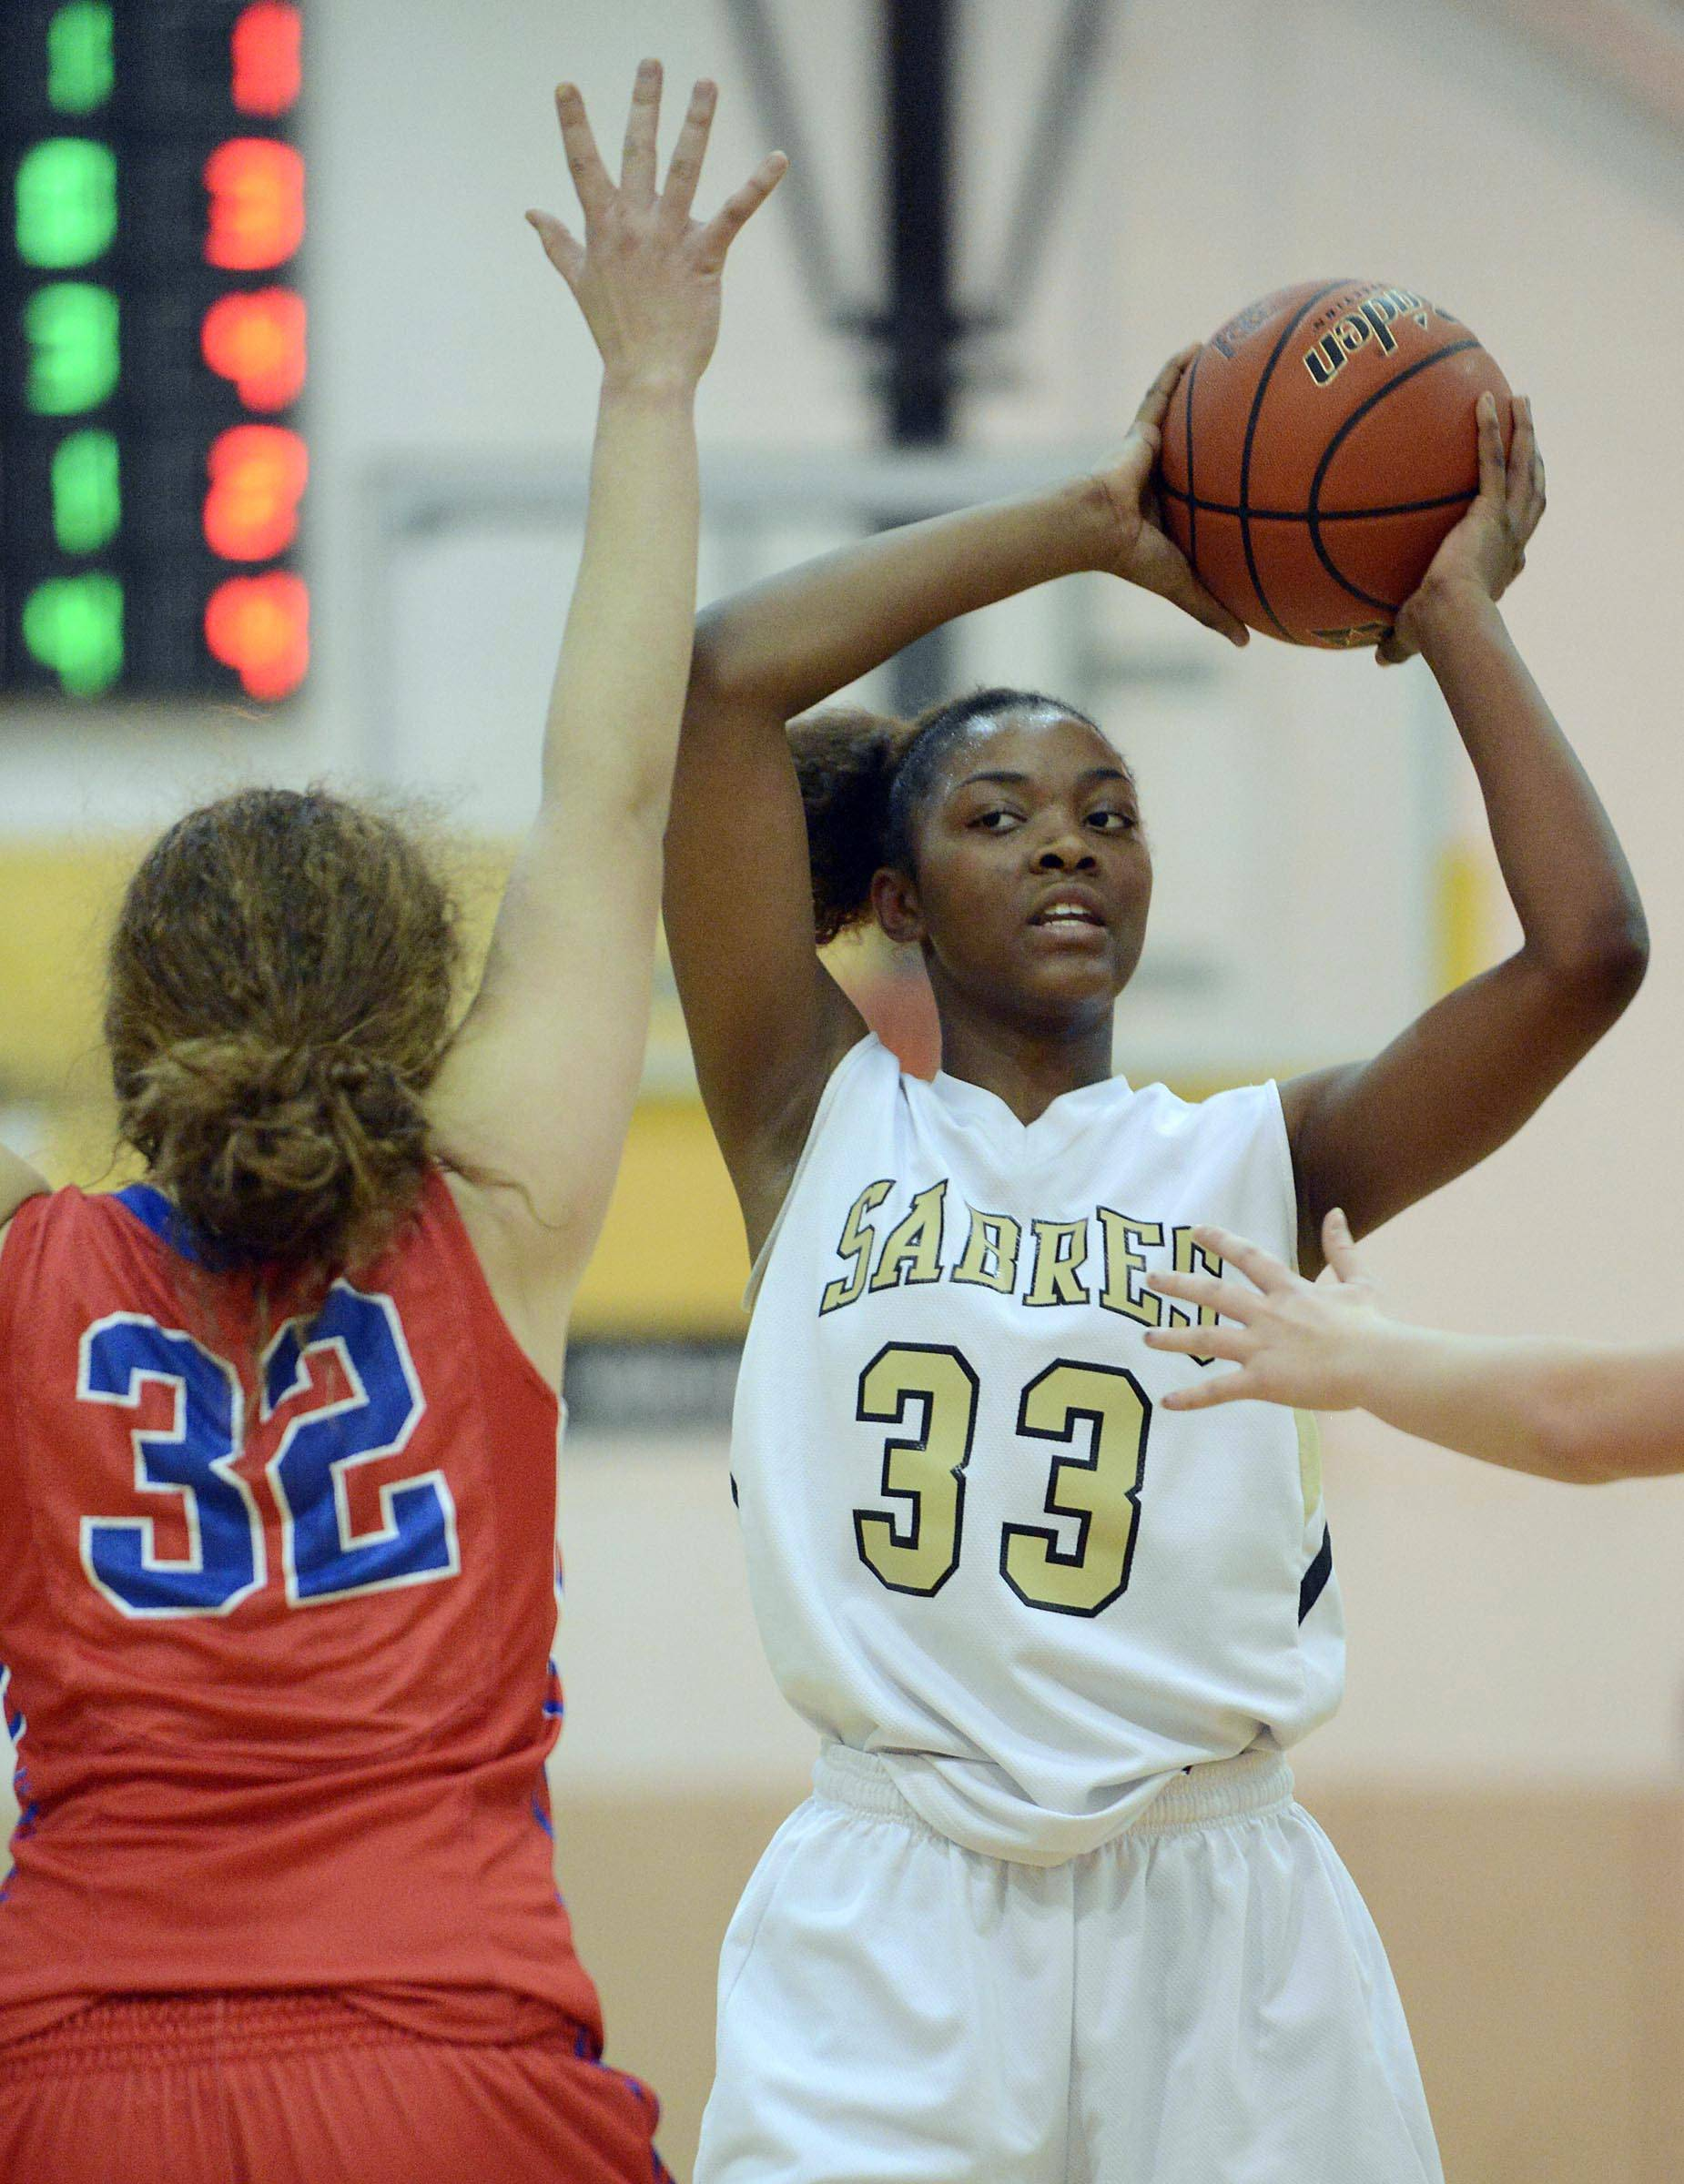 Images from the Streamwood vs. Dundee-Crown girls basketball game Tuesday, February 19, 2014.